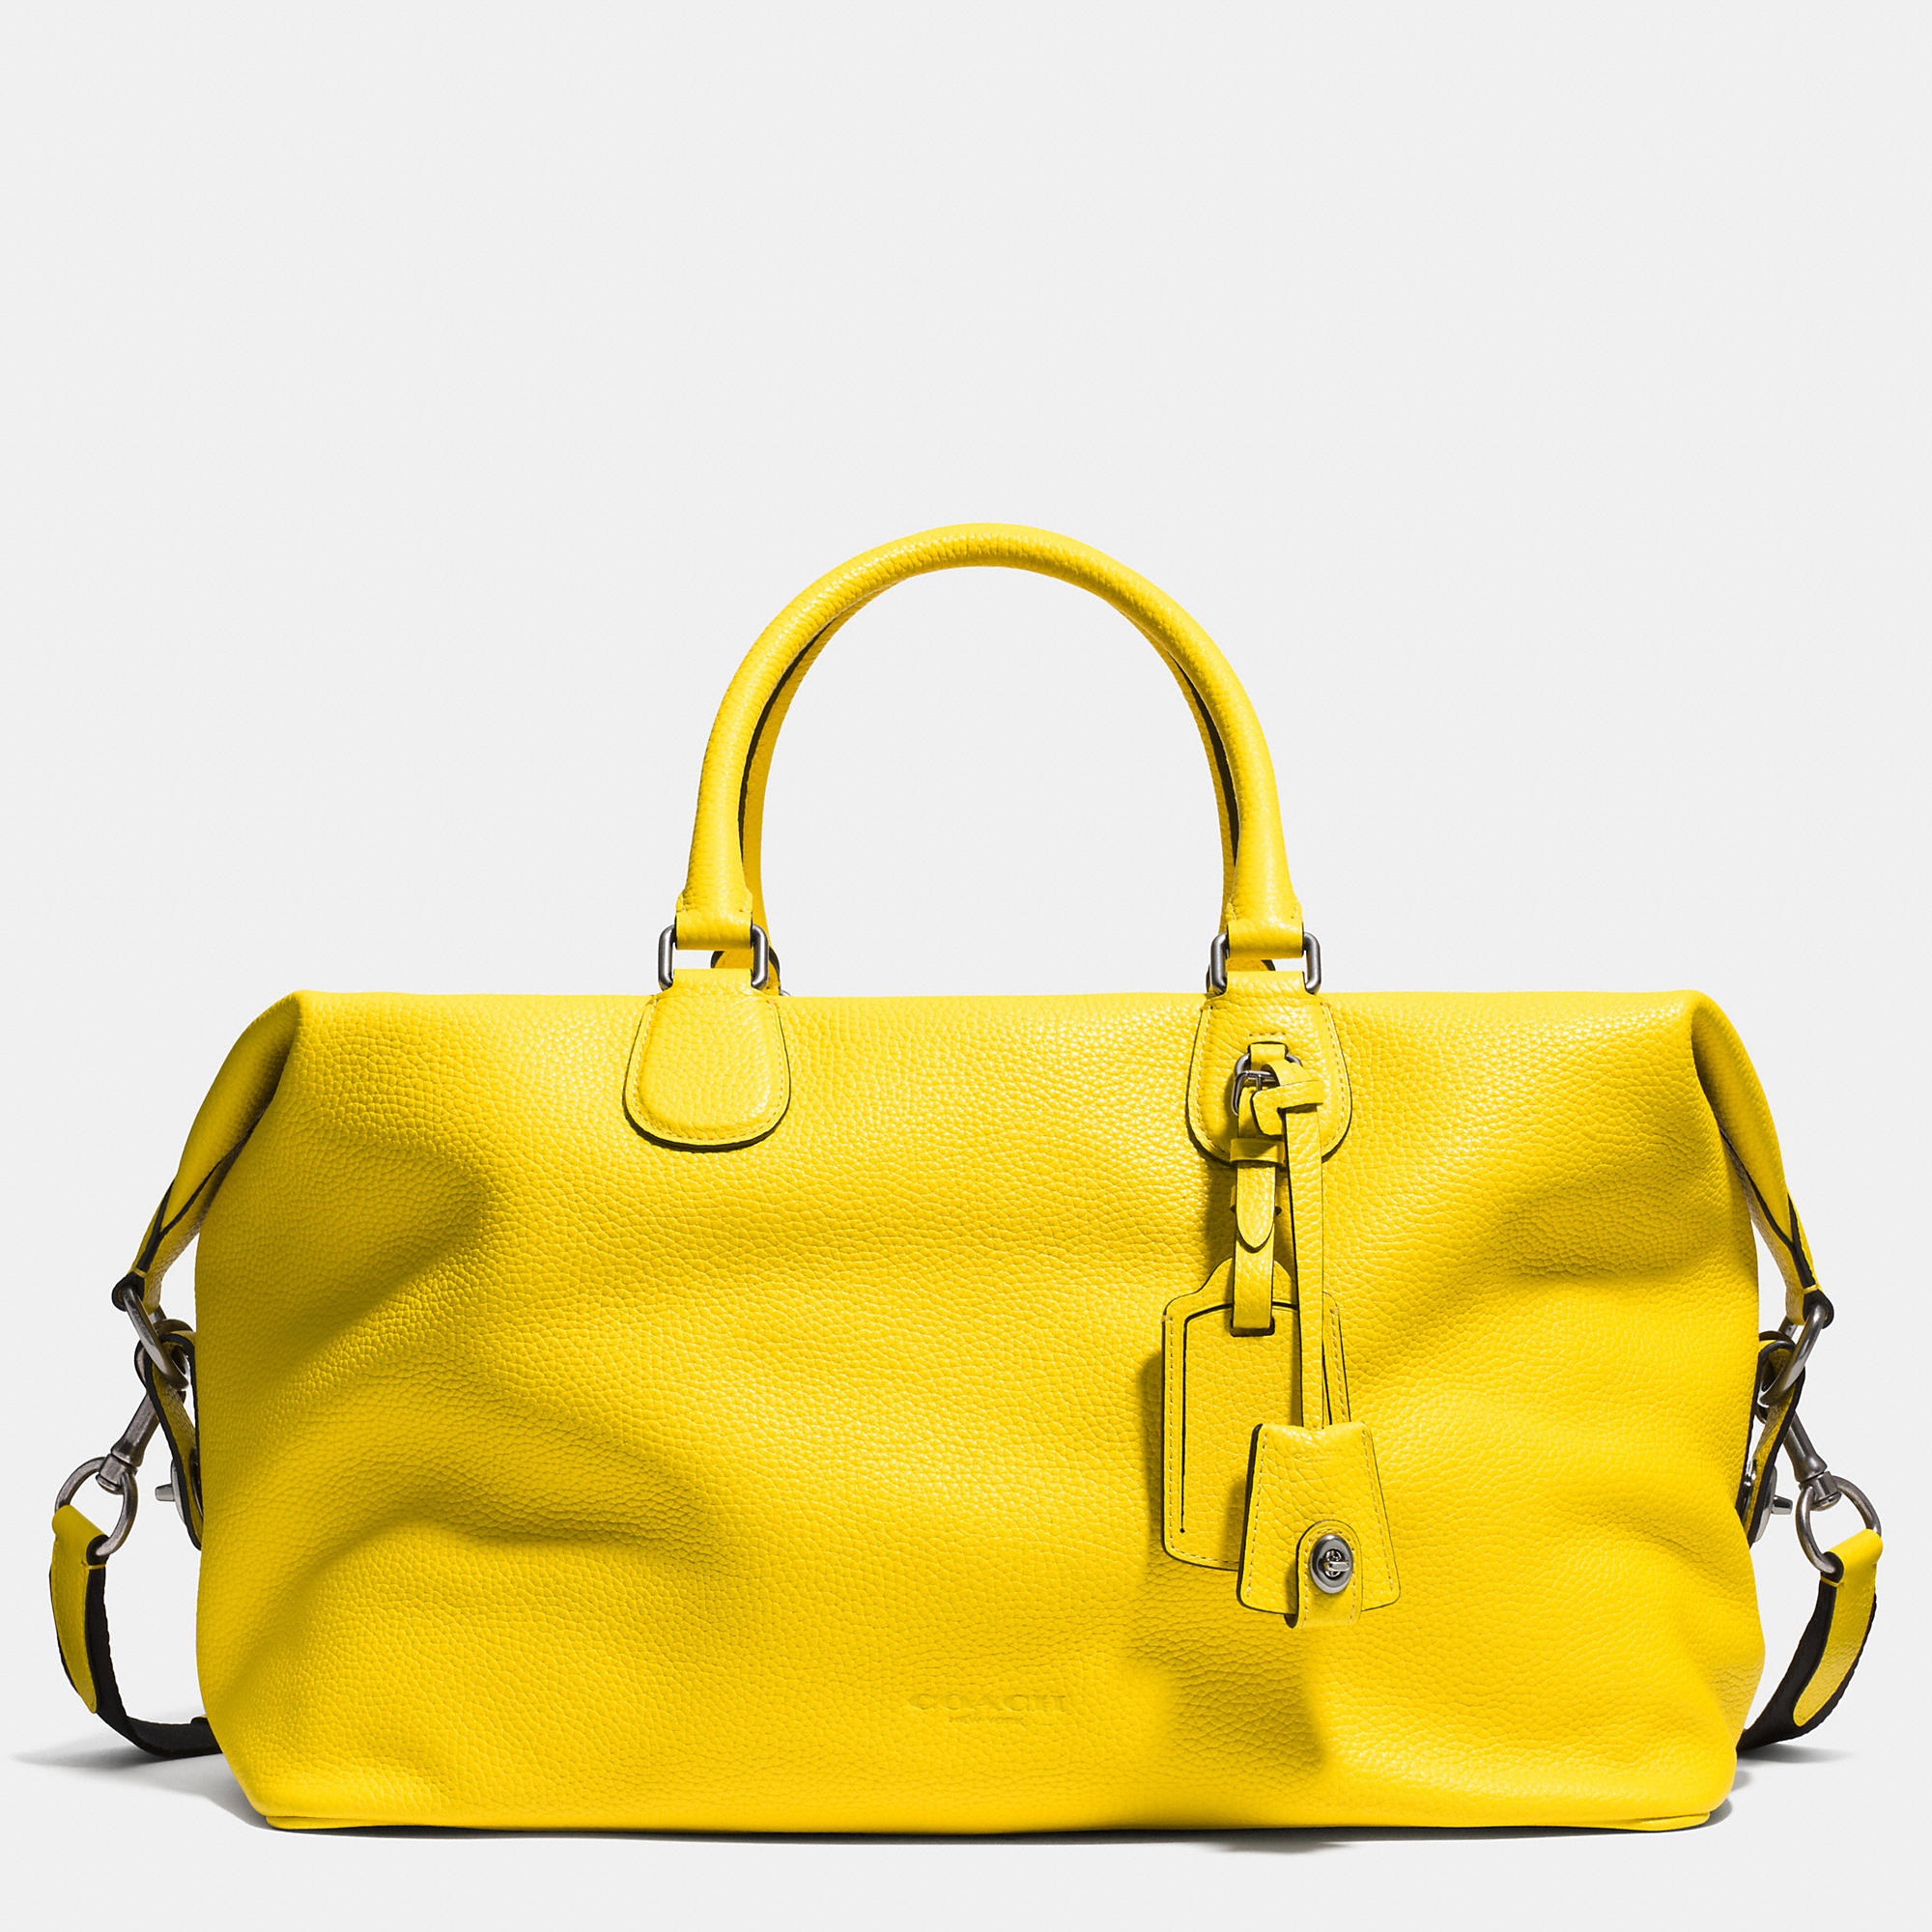 Coach Swagger 21 Explorer Bag In Pebble Leather Yellow For Men Lyst